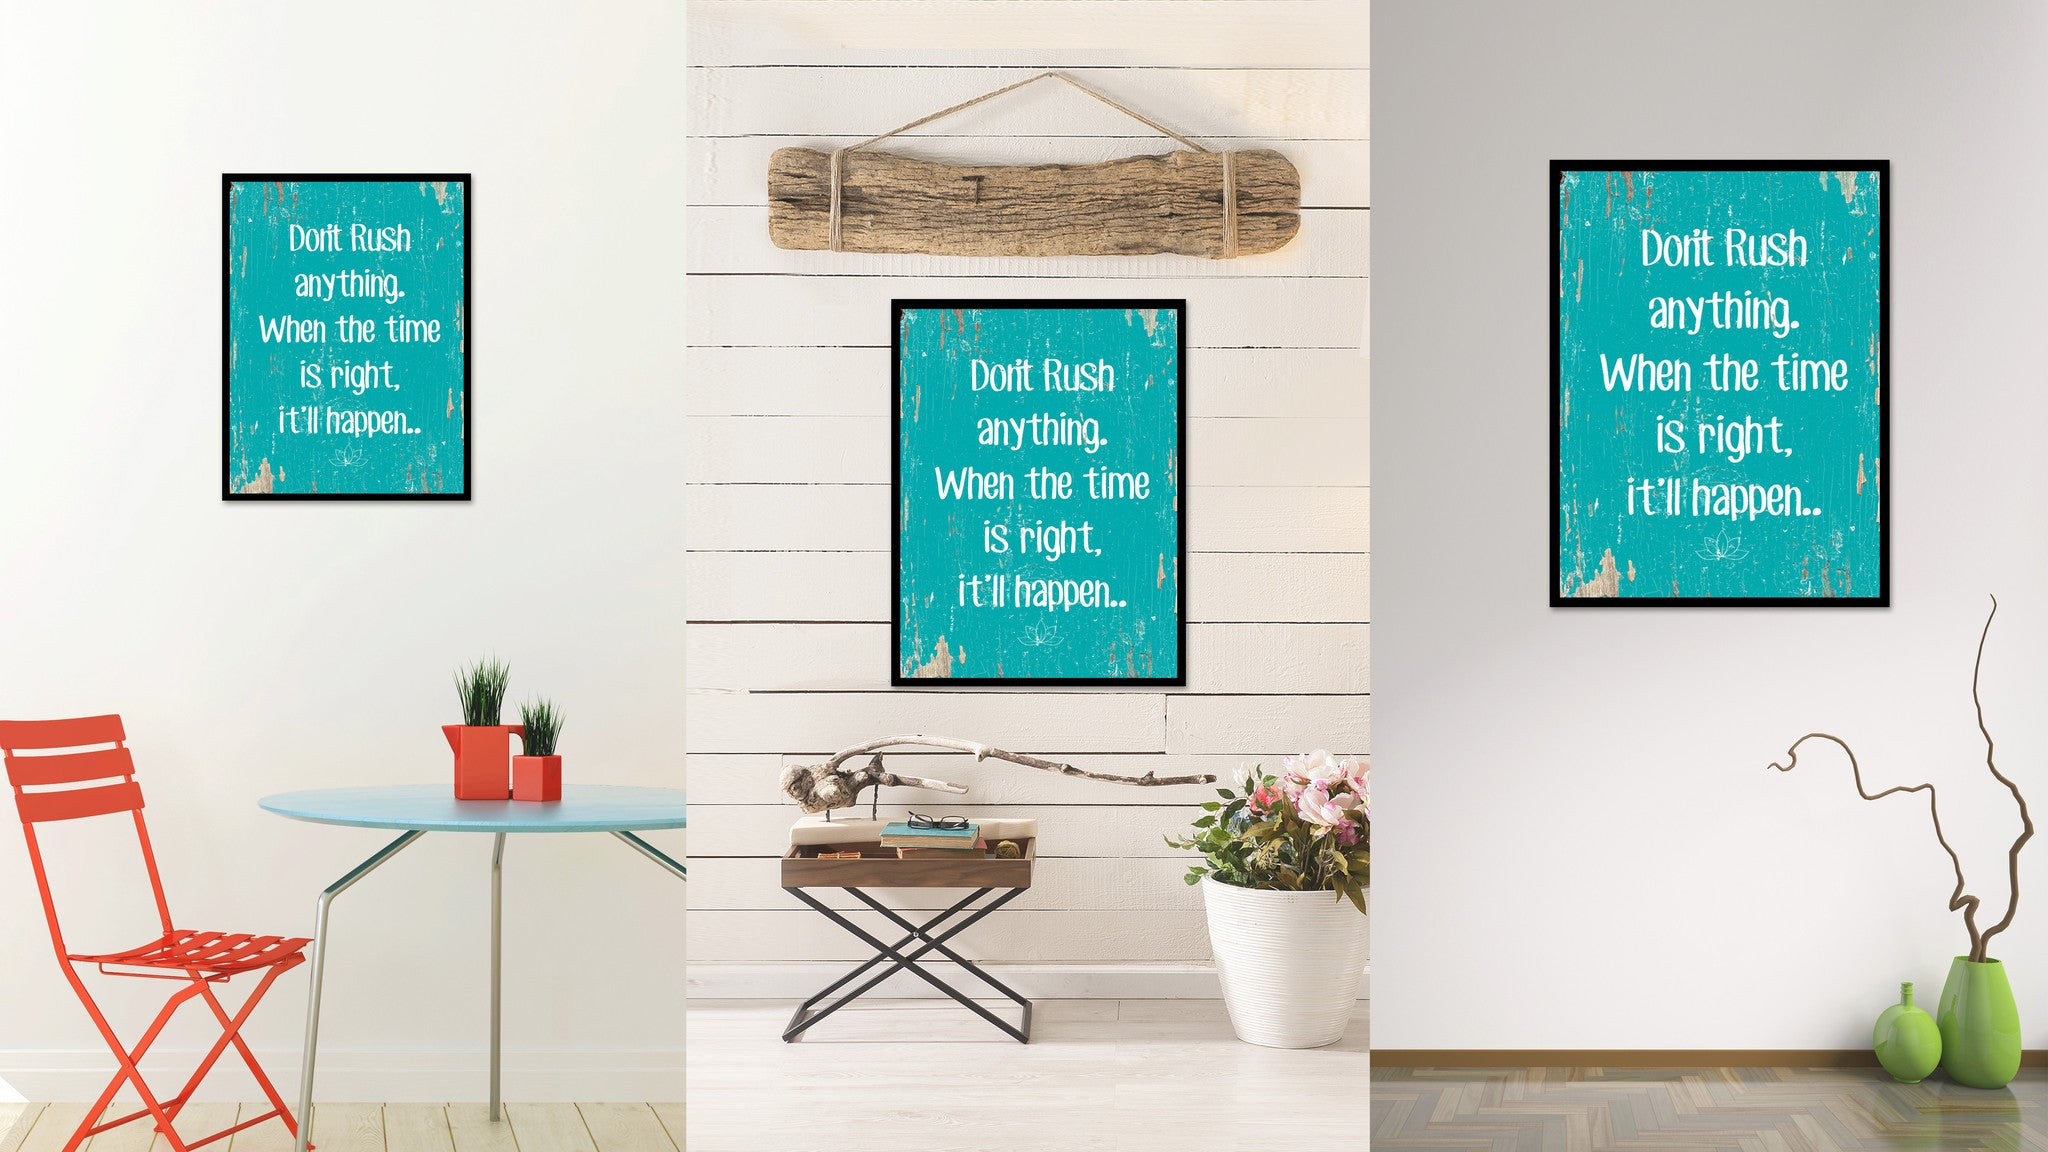 Don't Rush Anything When The Time Is Right Quote Saying Home Decor Wall Art Gift Ideas 111719